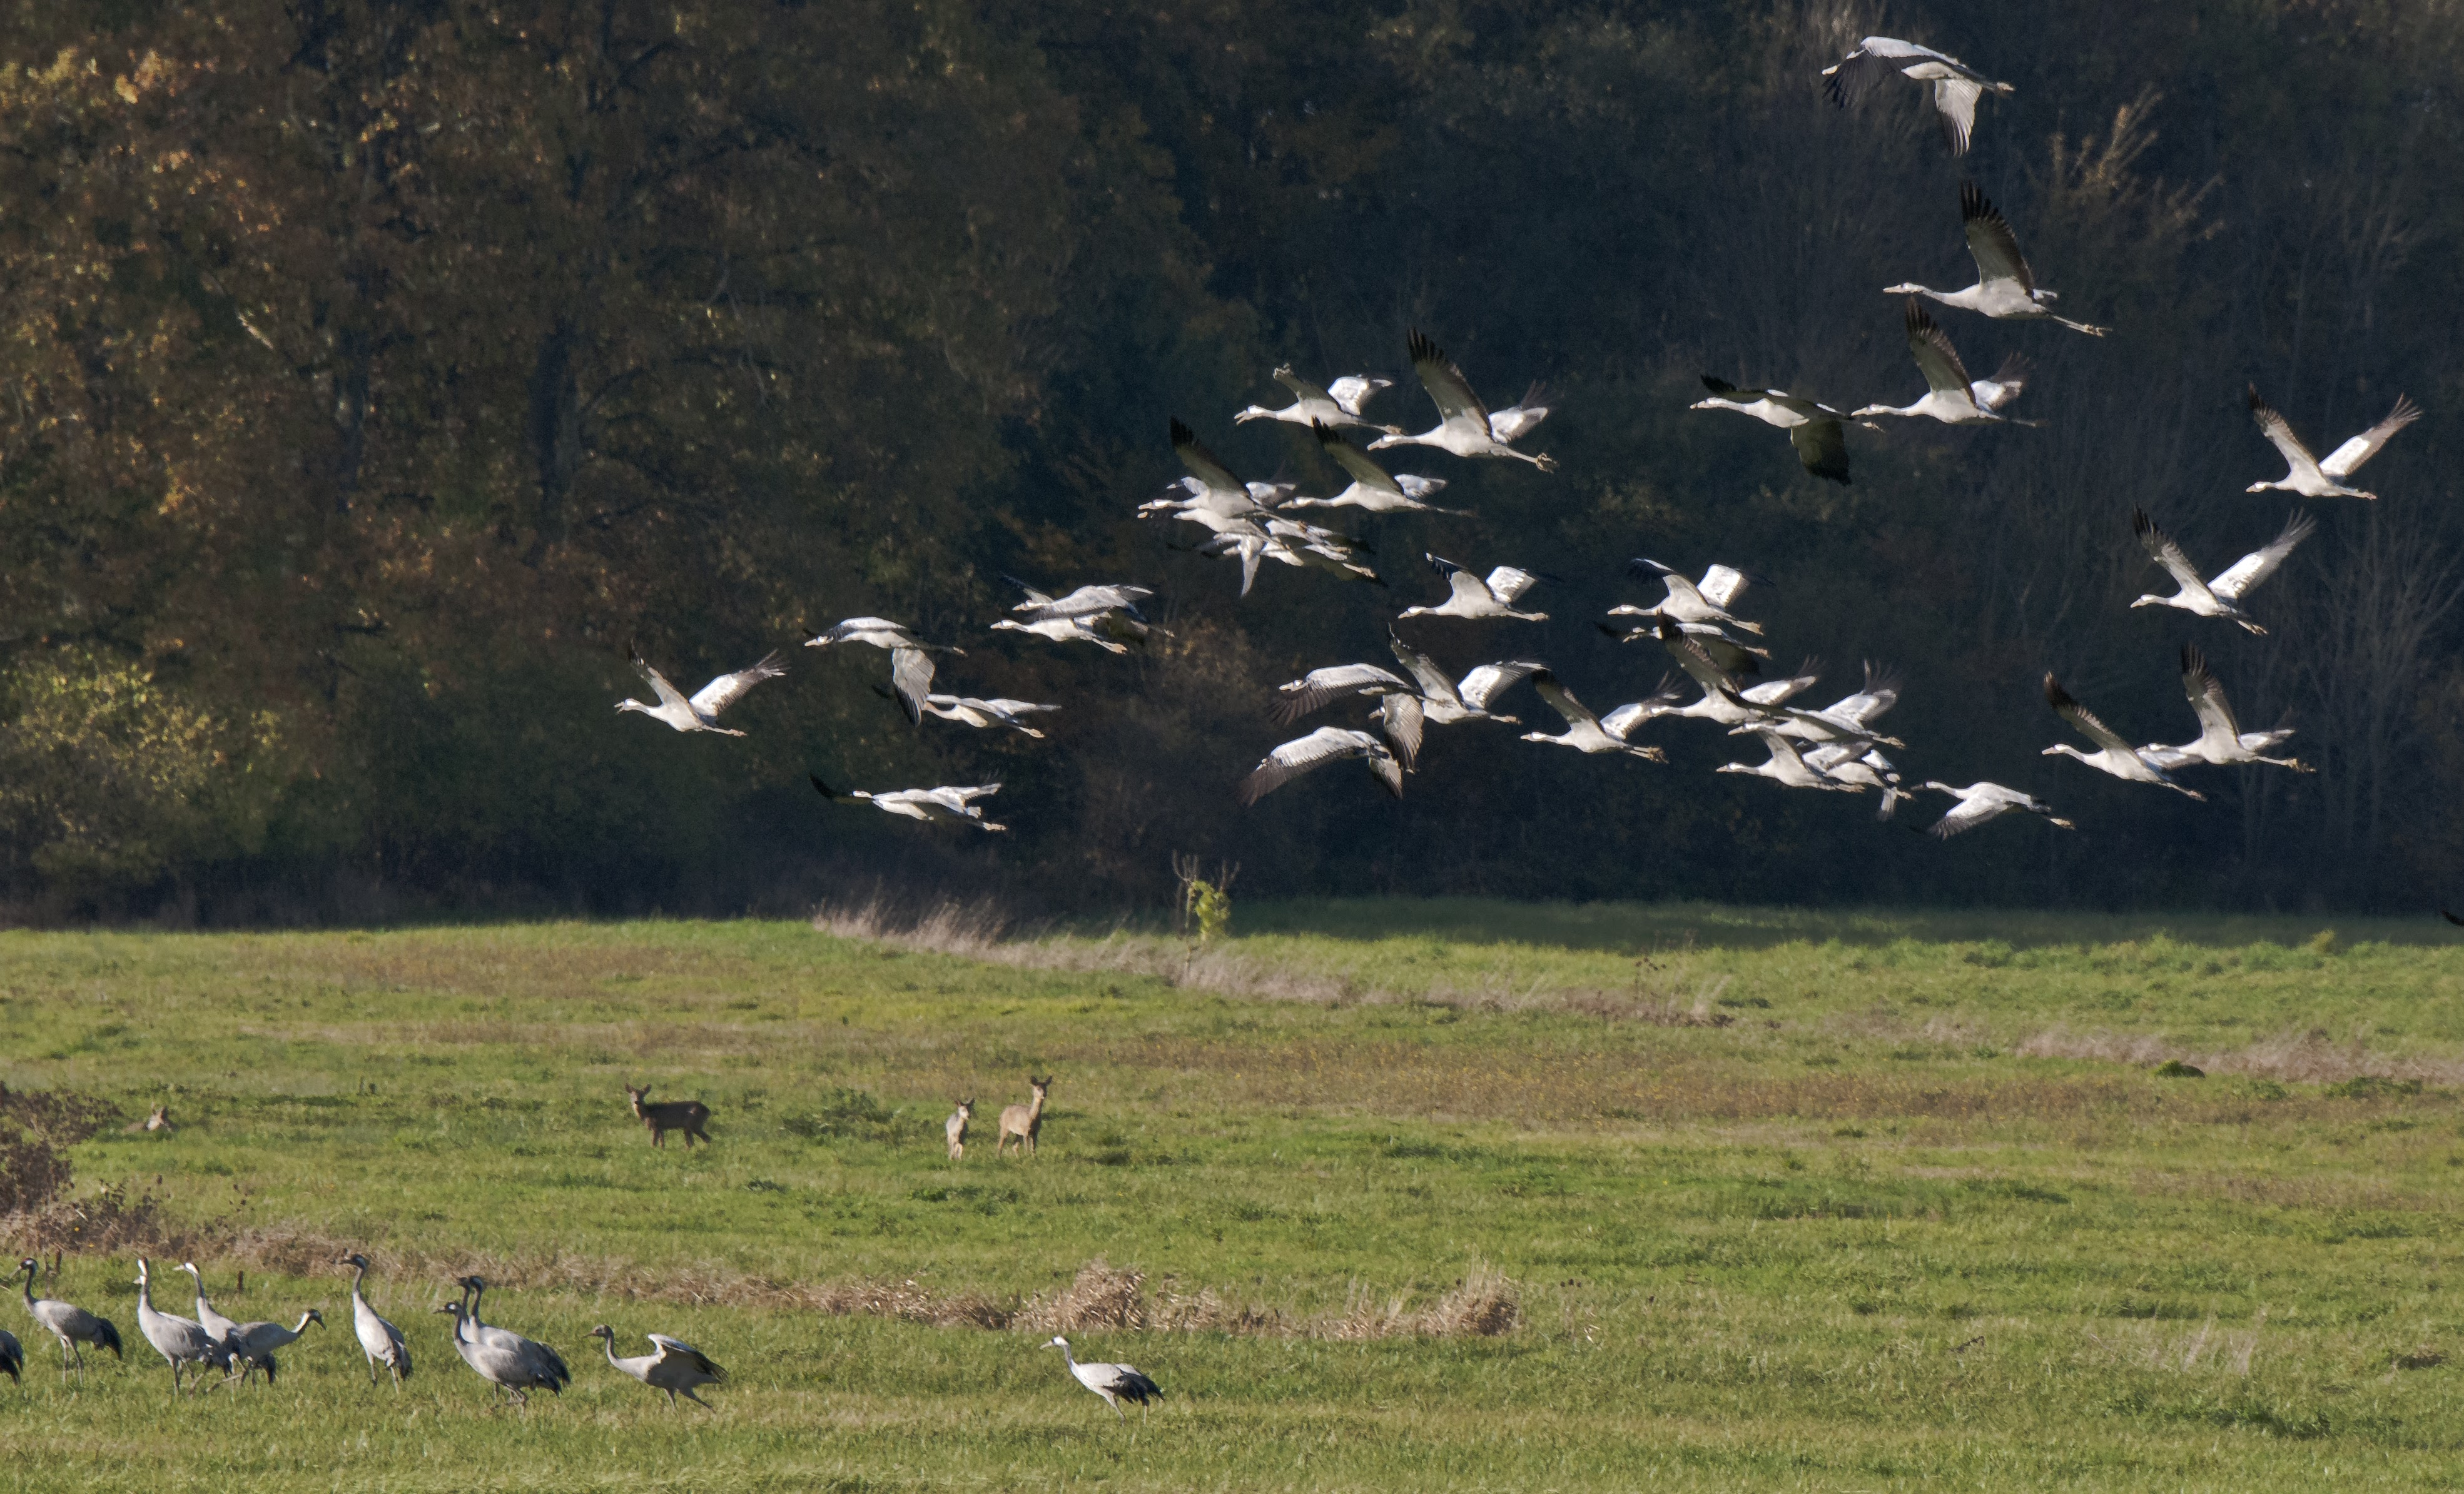 Cranes. Great autumn migration